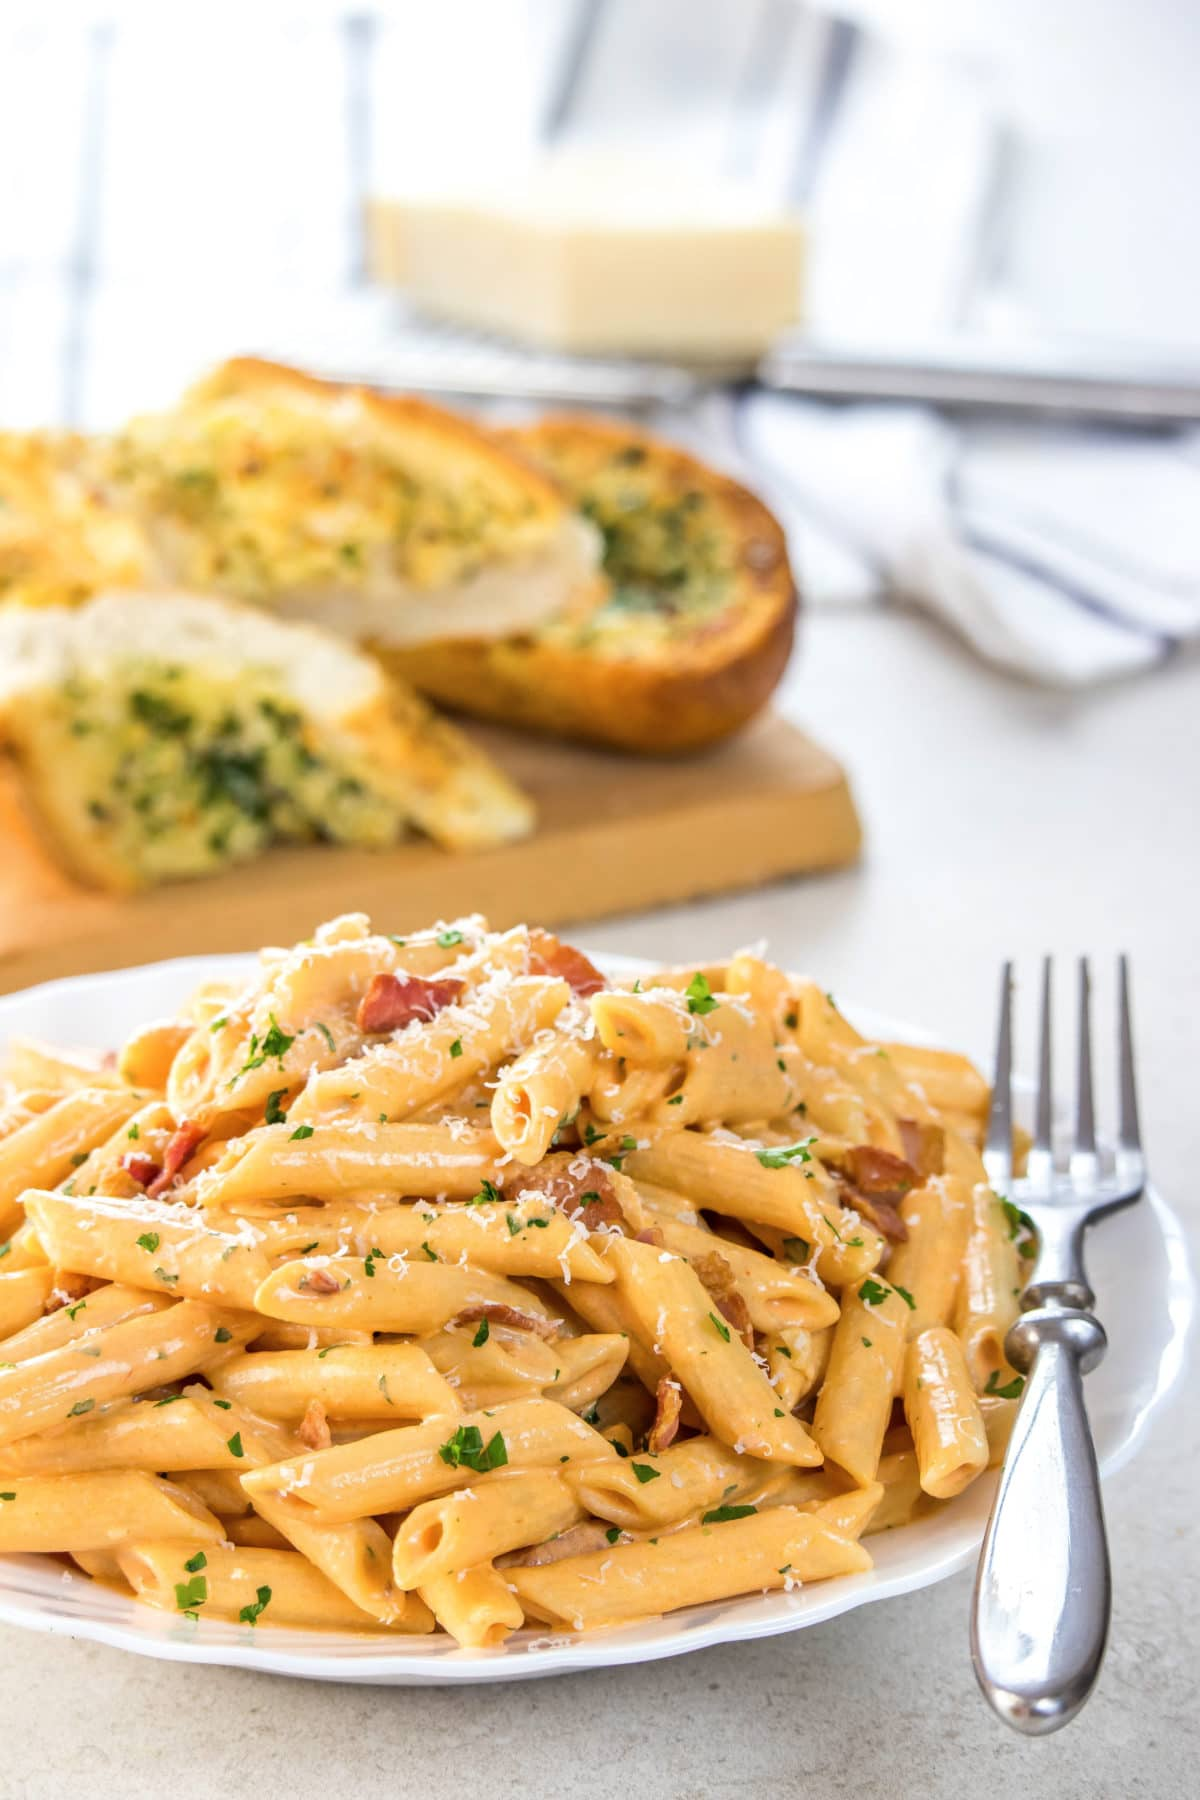 Penne Alla Vodka piled high on a white plate, sprinkled with parmasean cheese anf garlic bread in the background